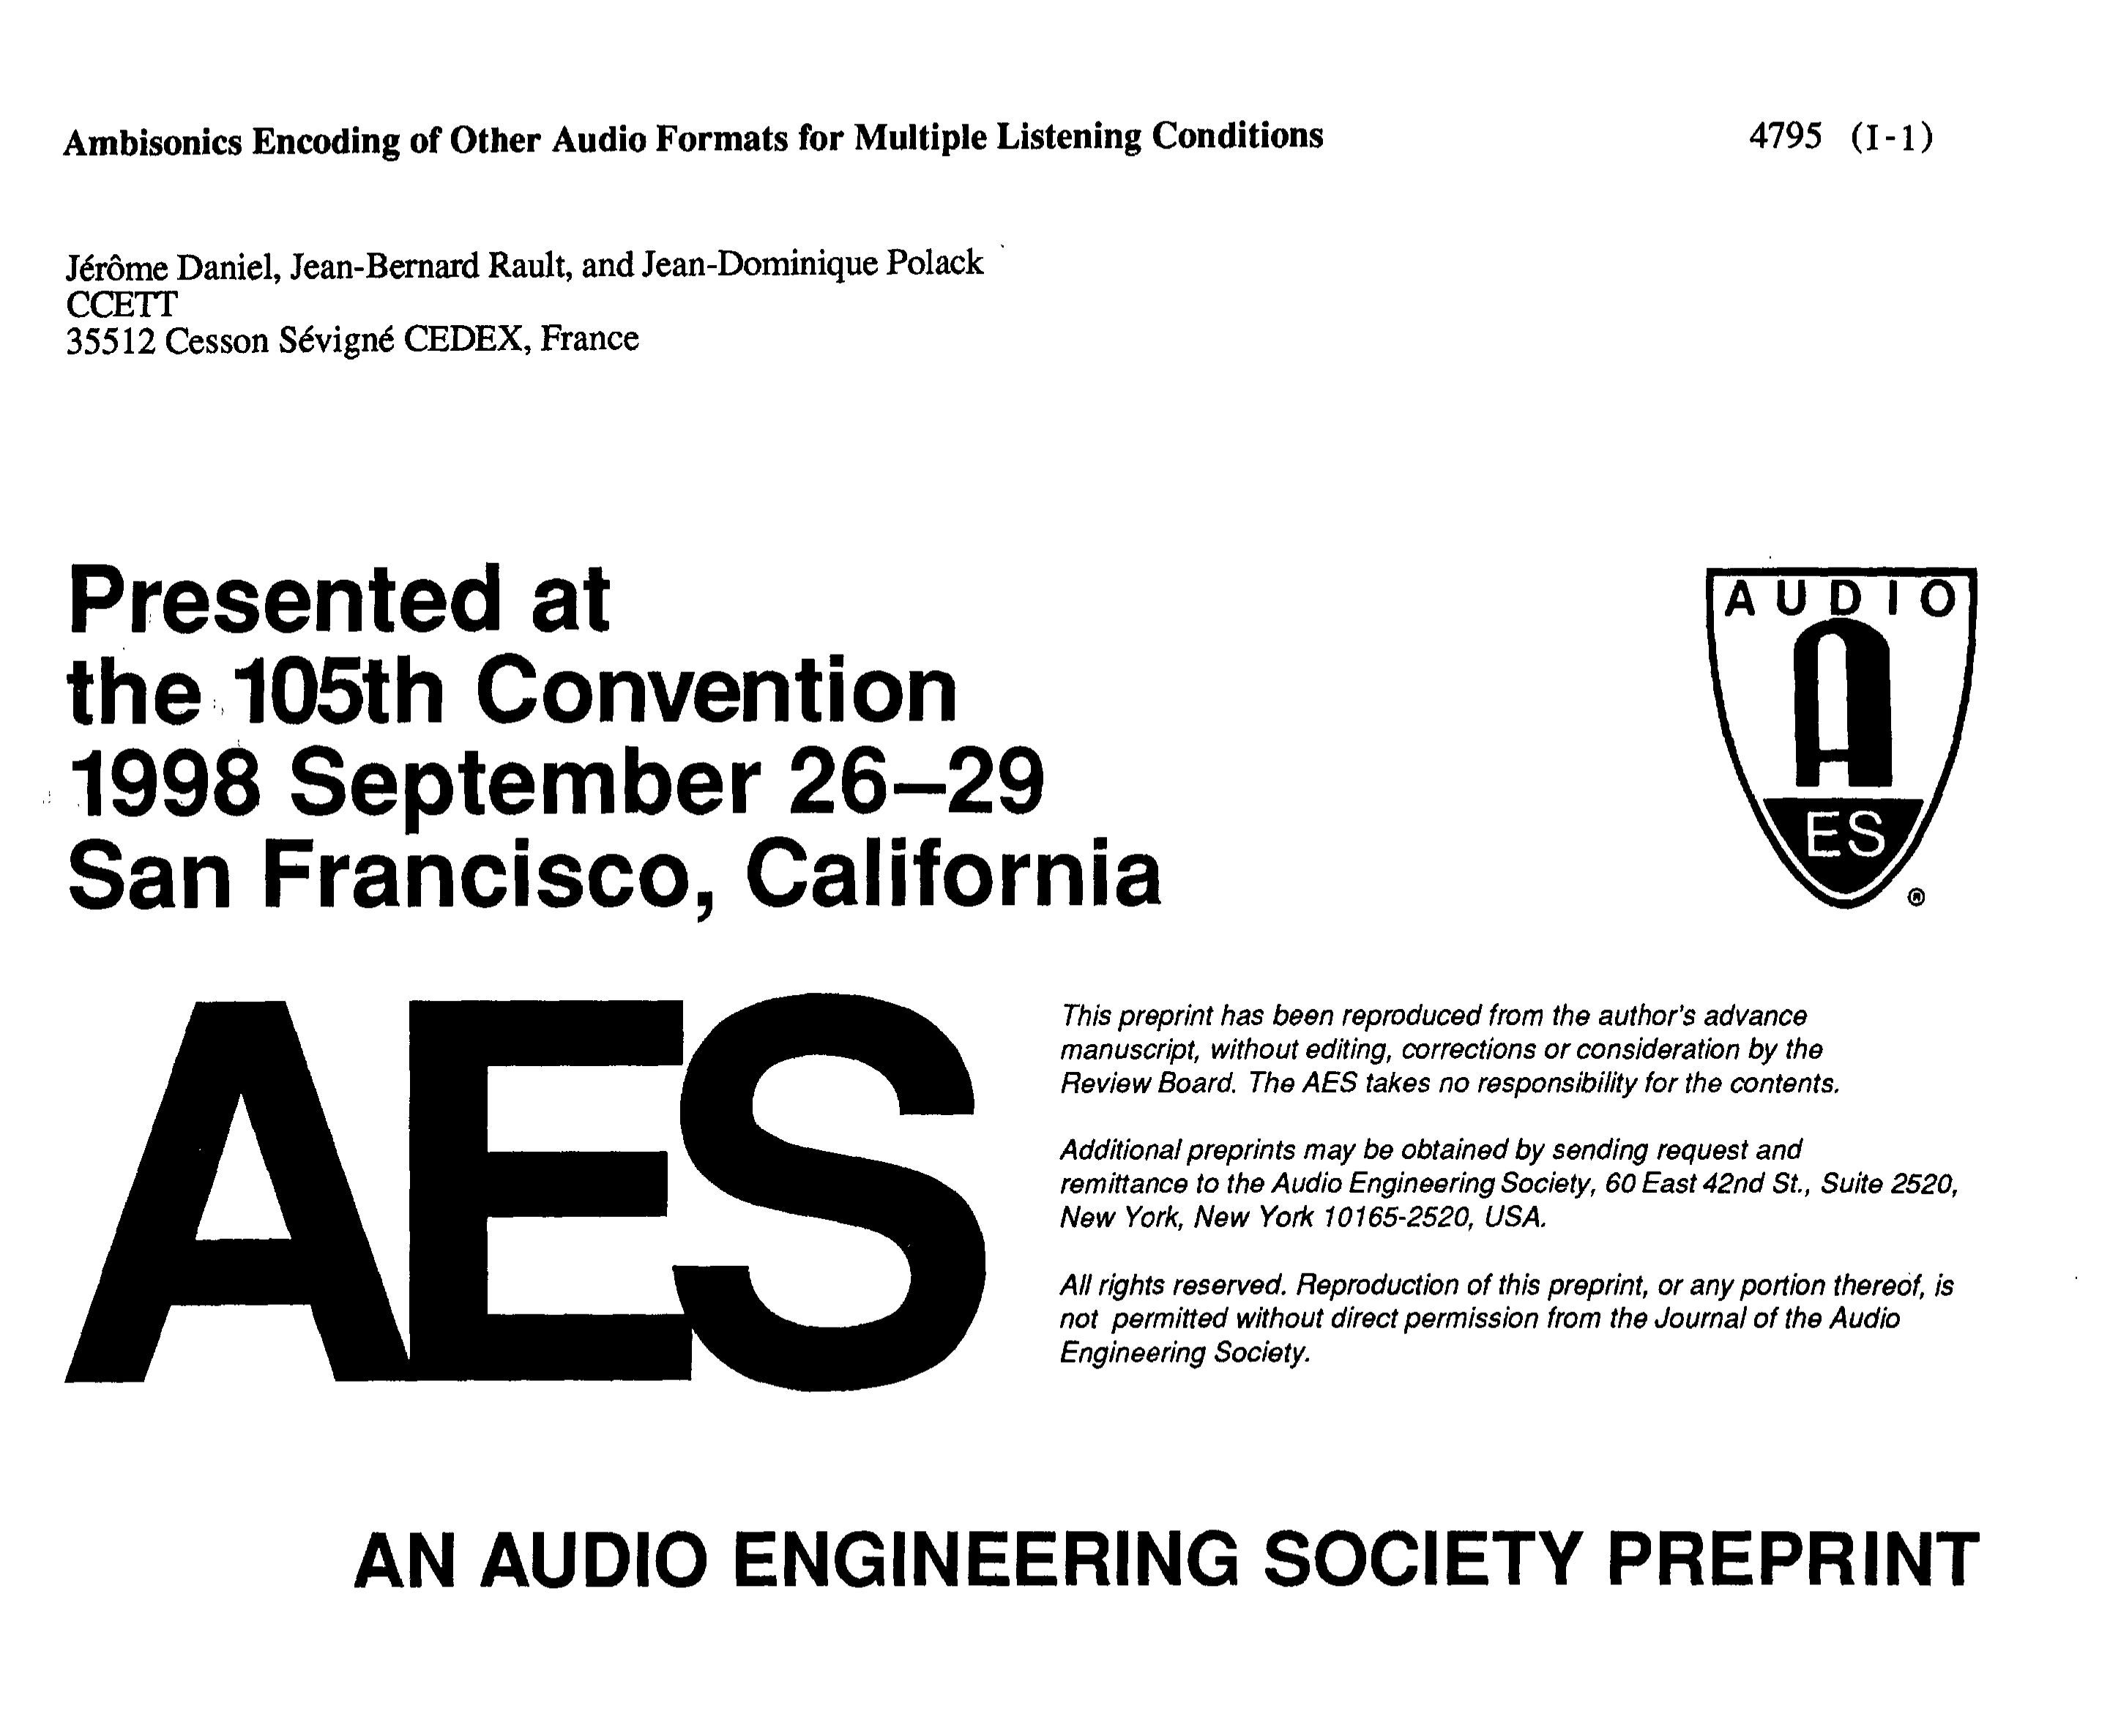 Ambisonics aes e-library » ambisonics encoding of other audio formats